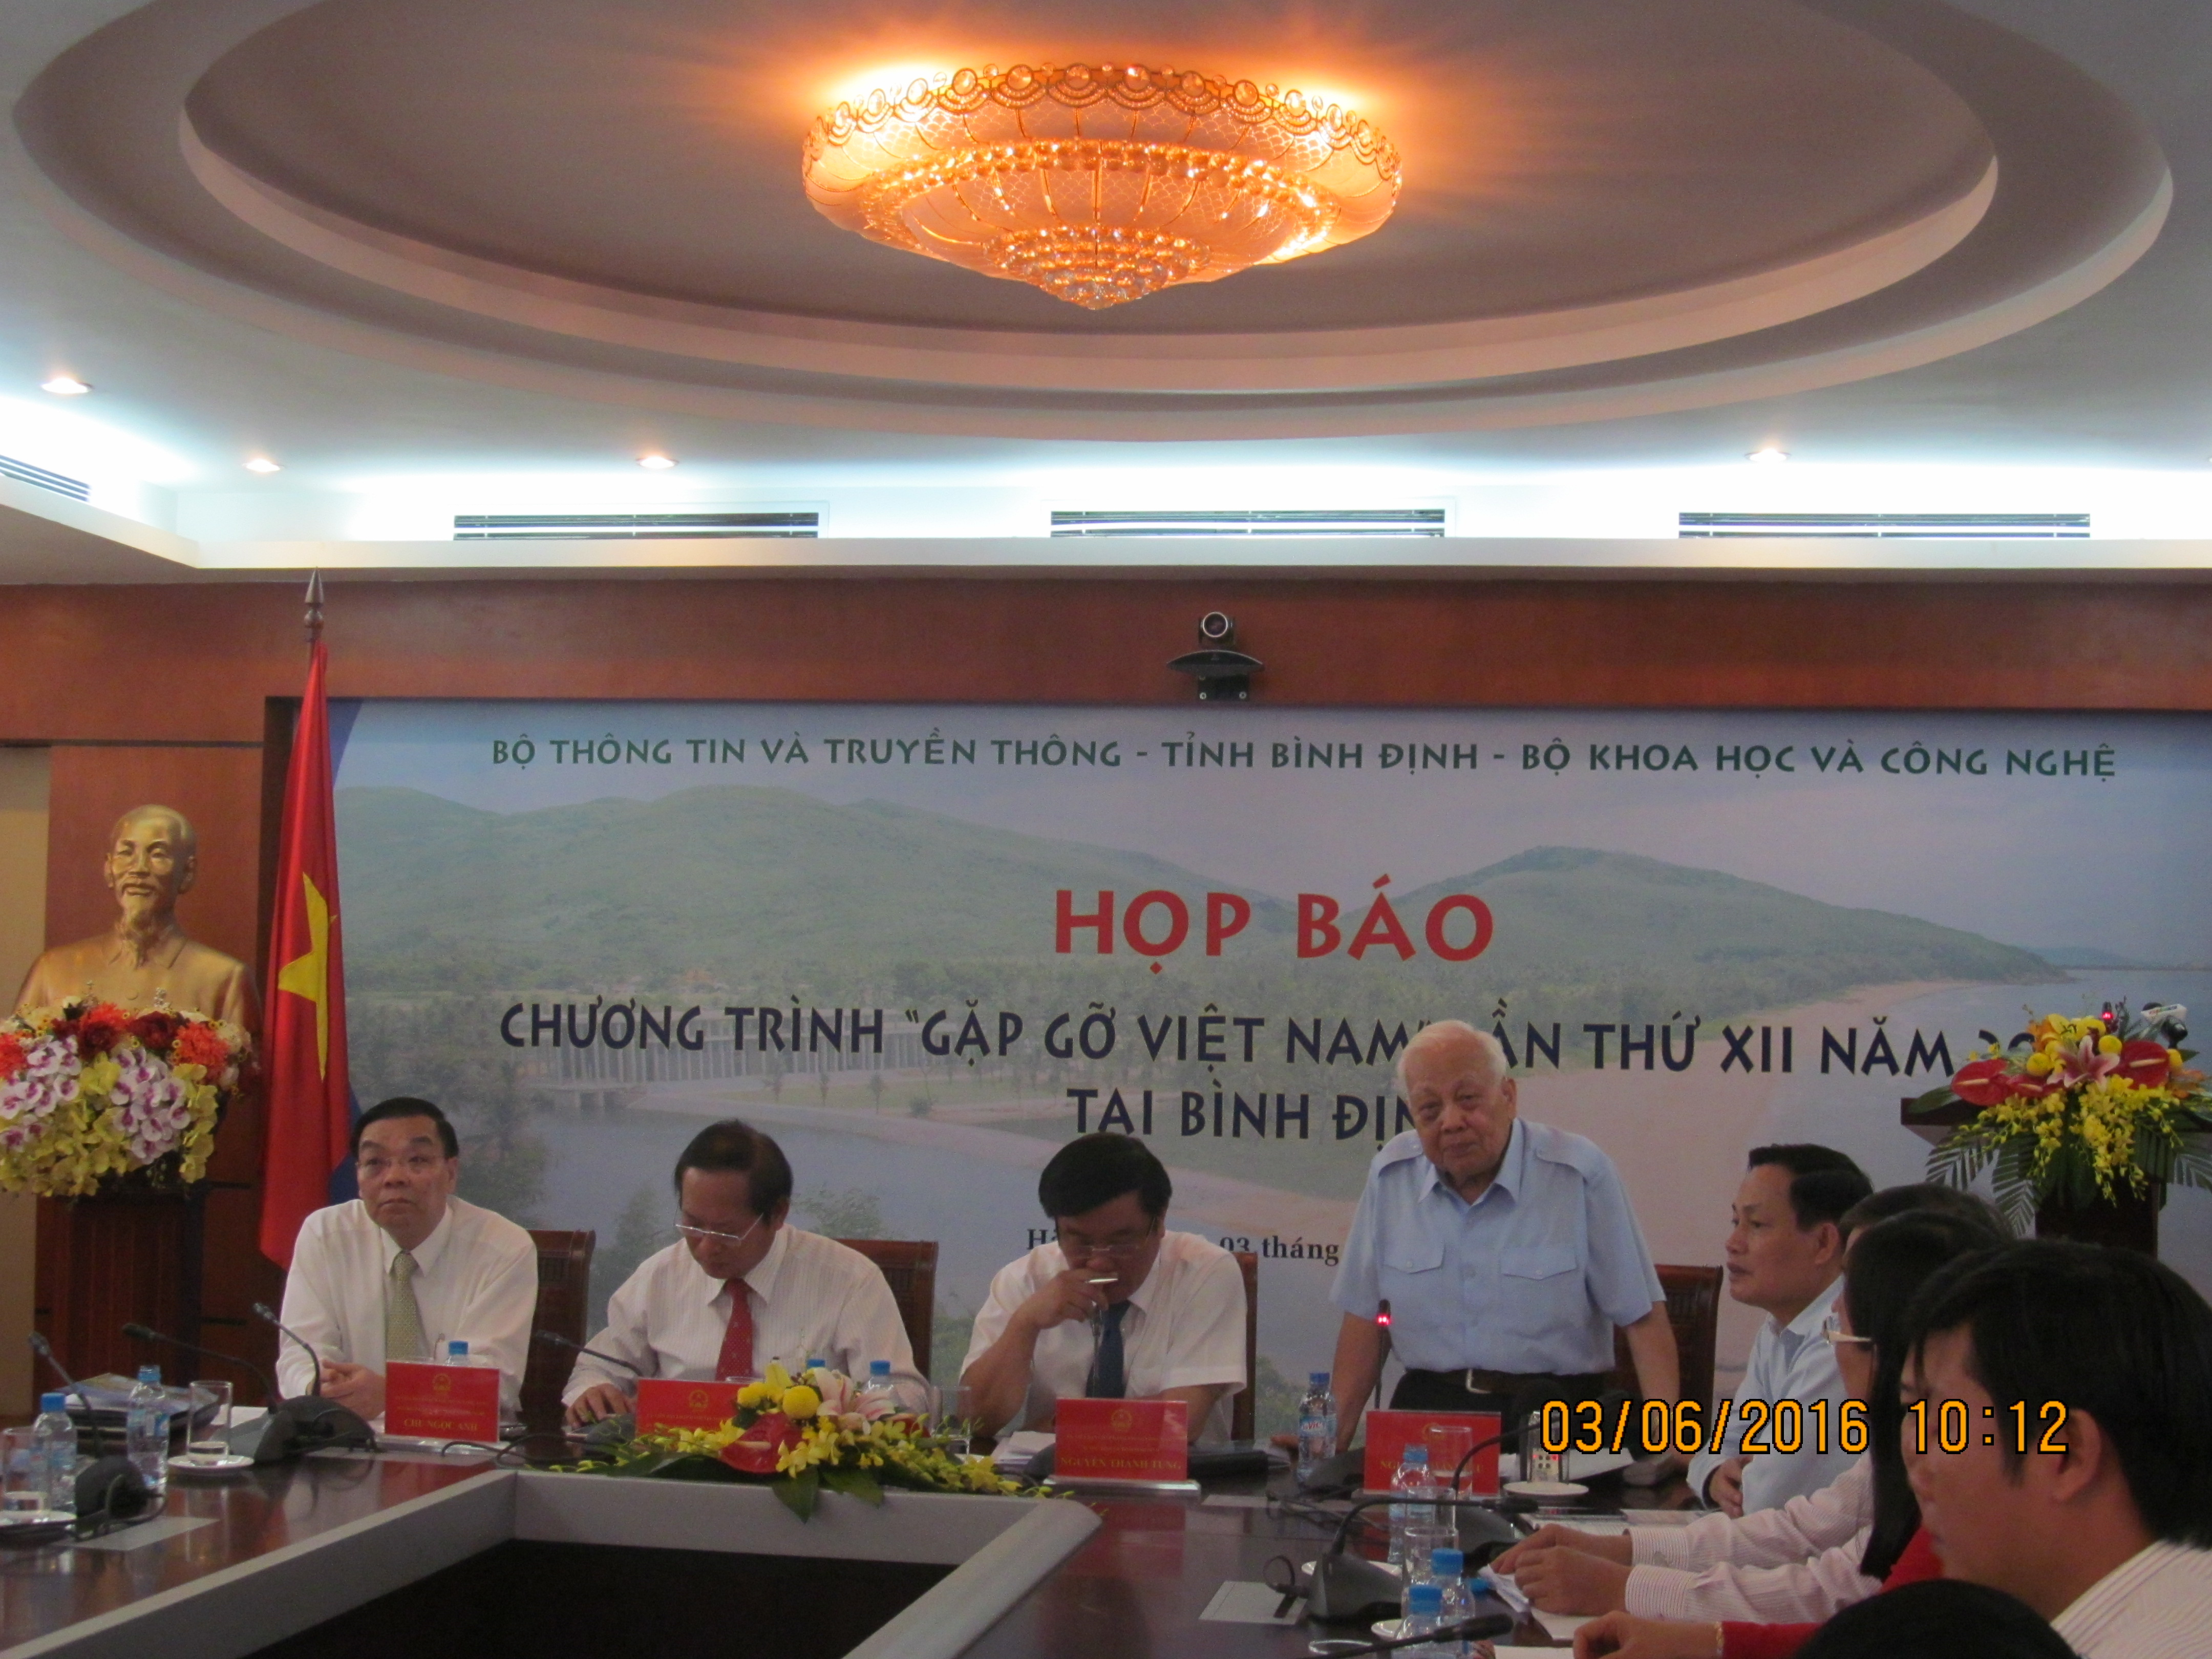 Meeting Vietnam program gathers scores of leading scientists